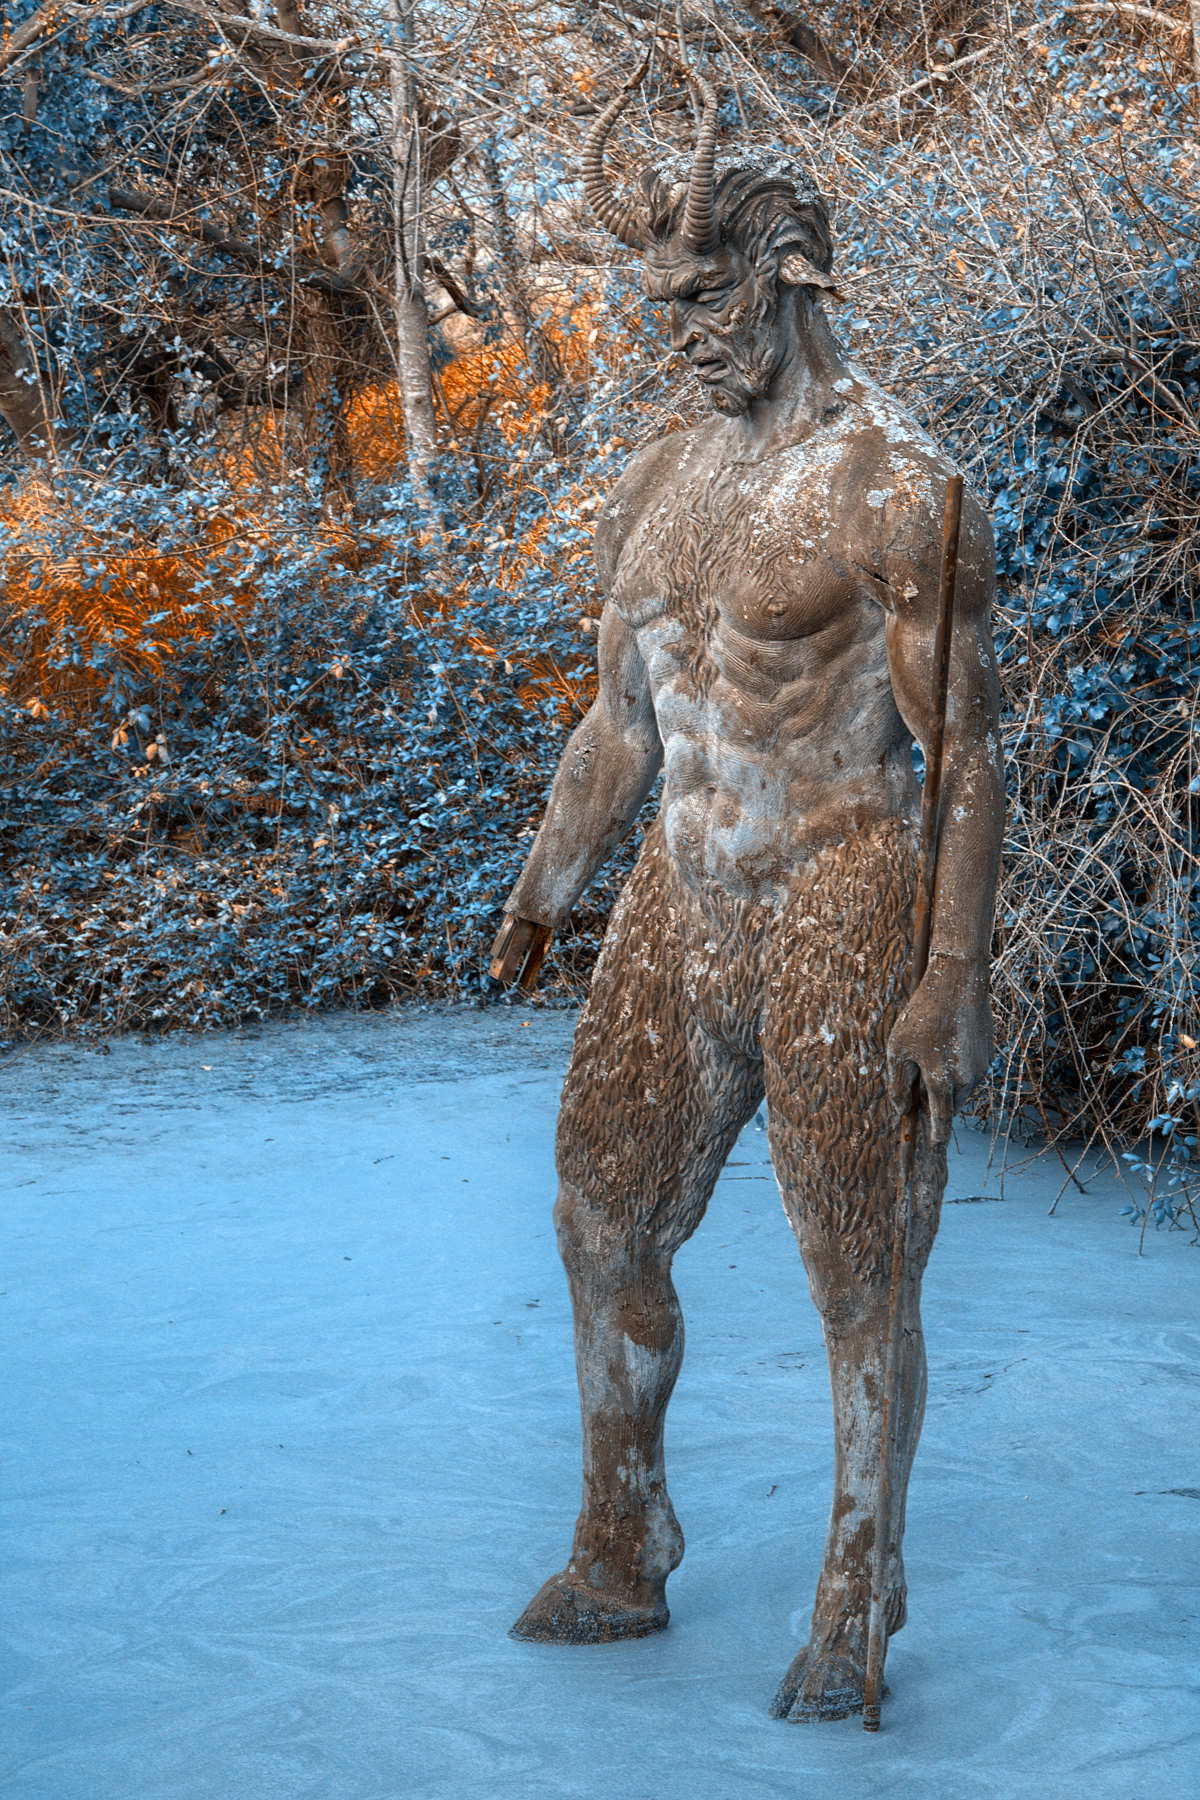 When Hell Freezes Over, Age, Murky, Old, Nature, HQ Photo